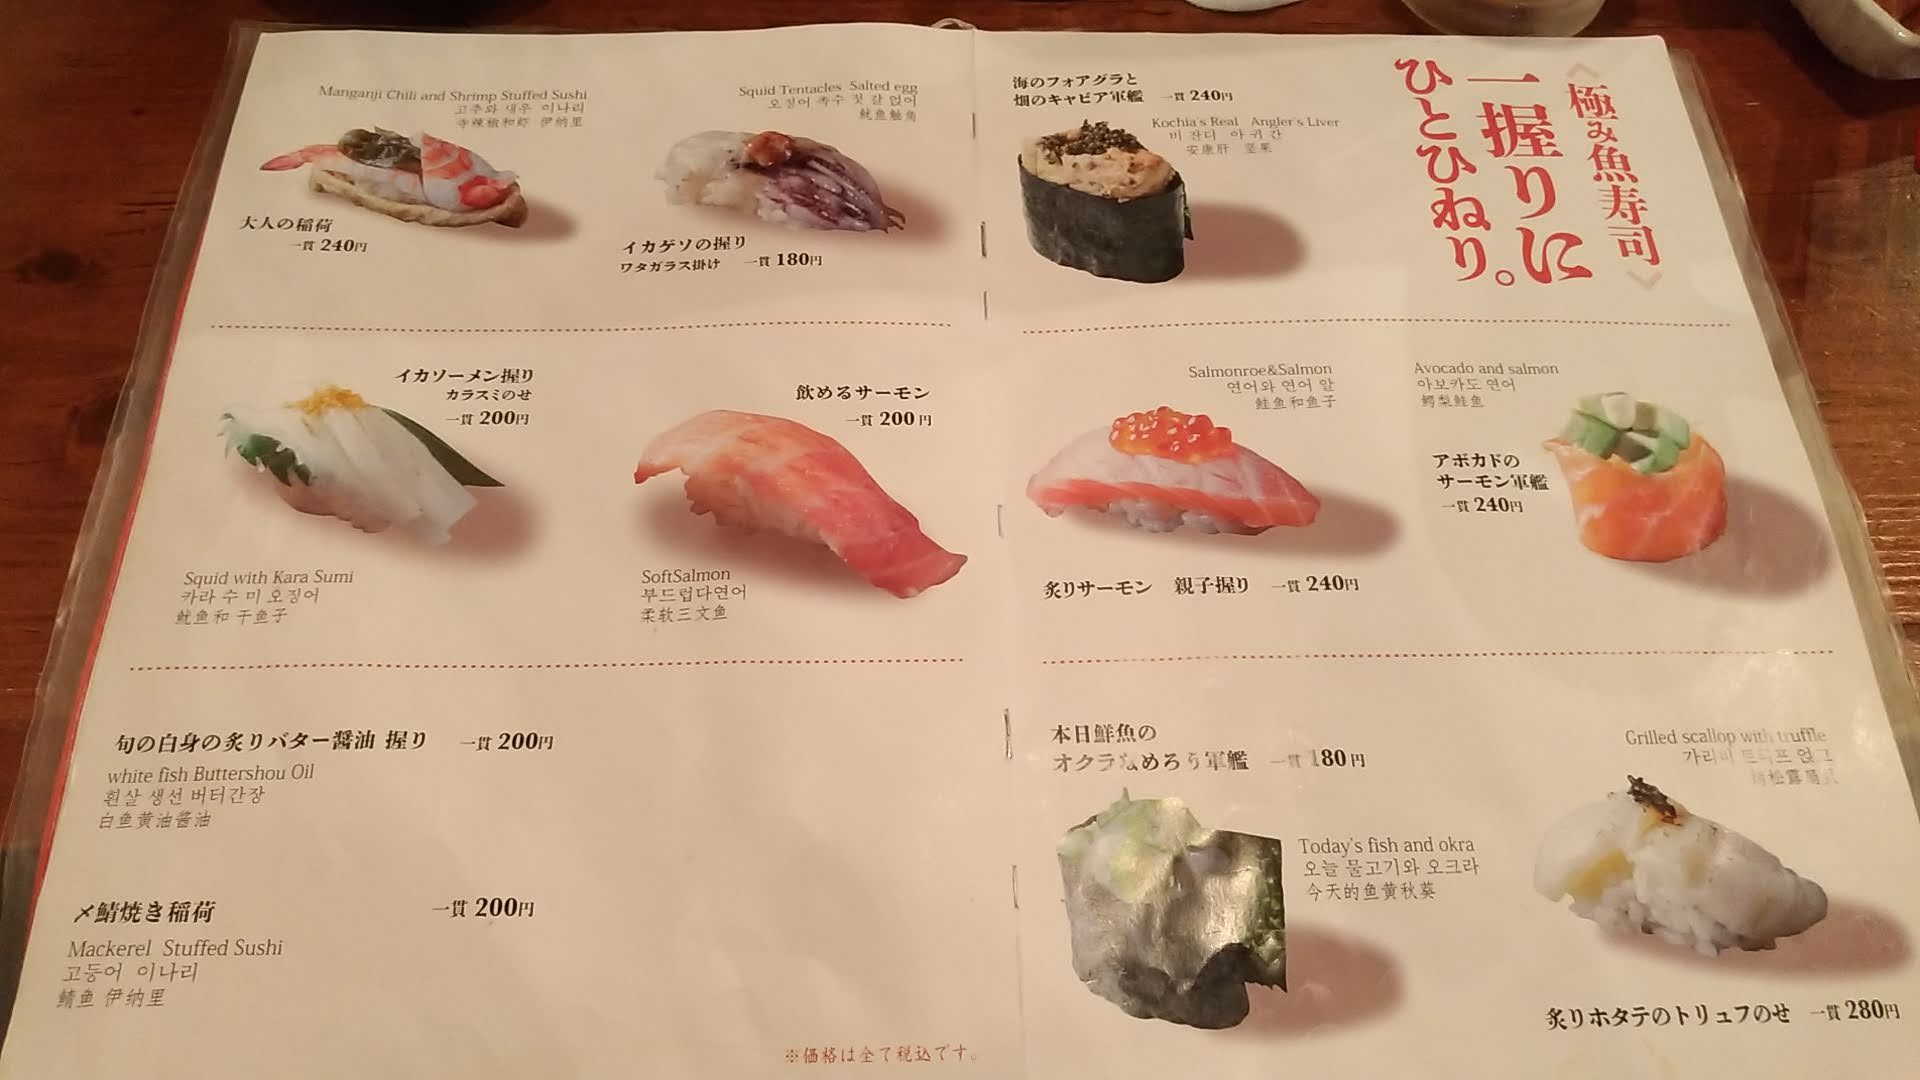 The menu of Sakana sushi 4